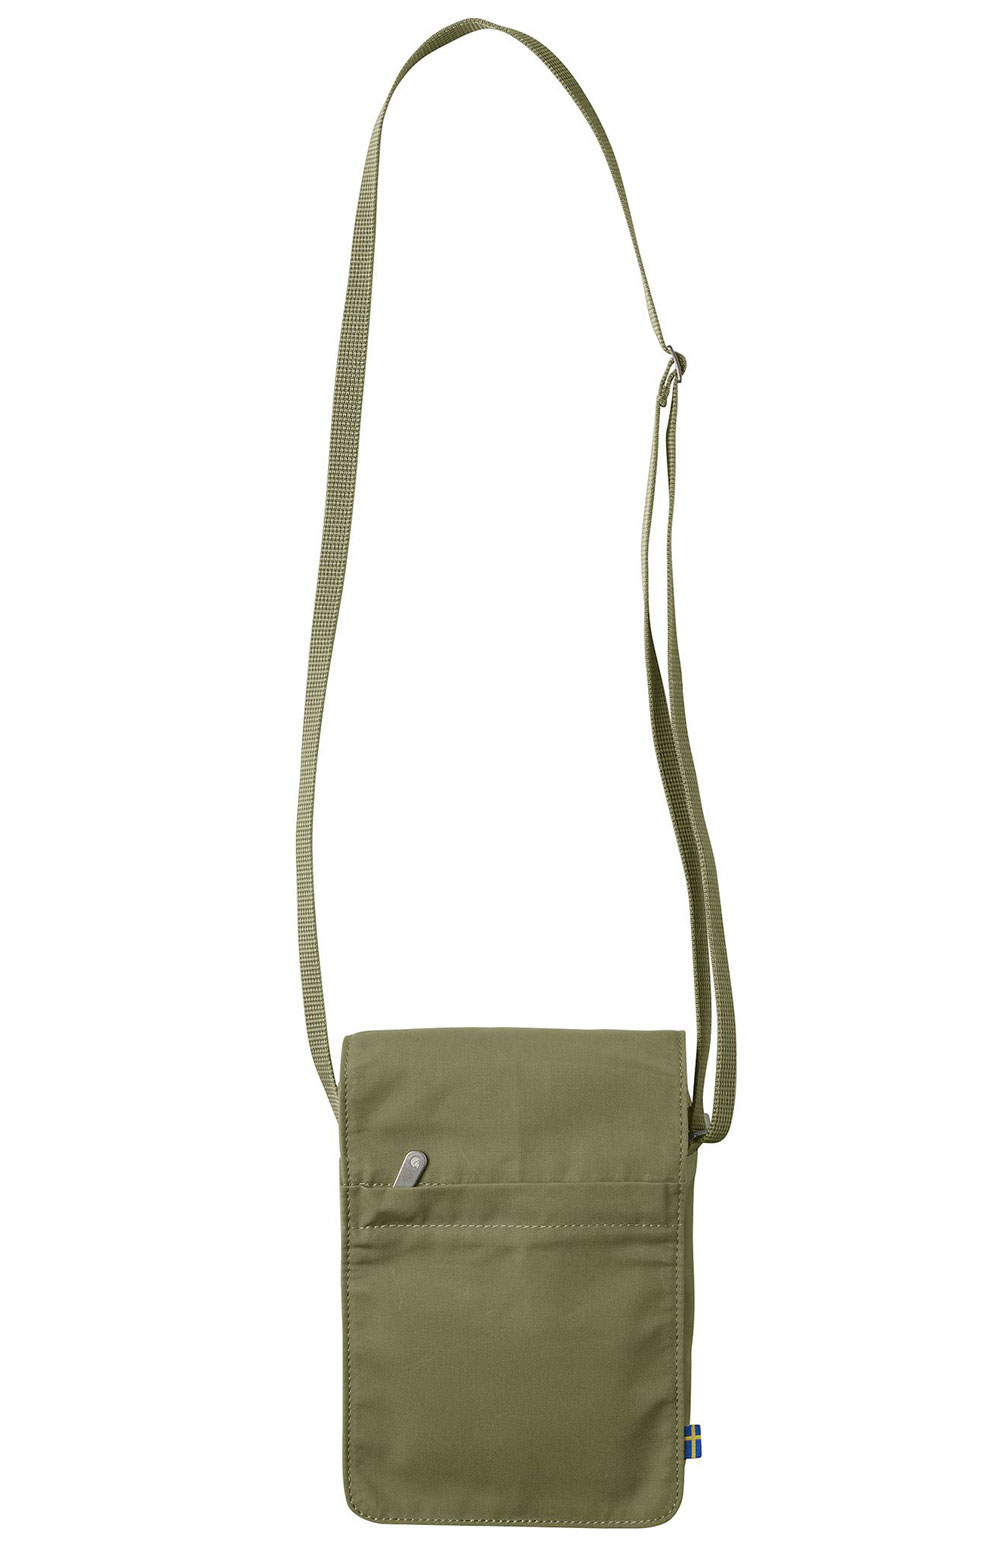 Greenland Pocket Bag - Green  2